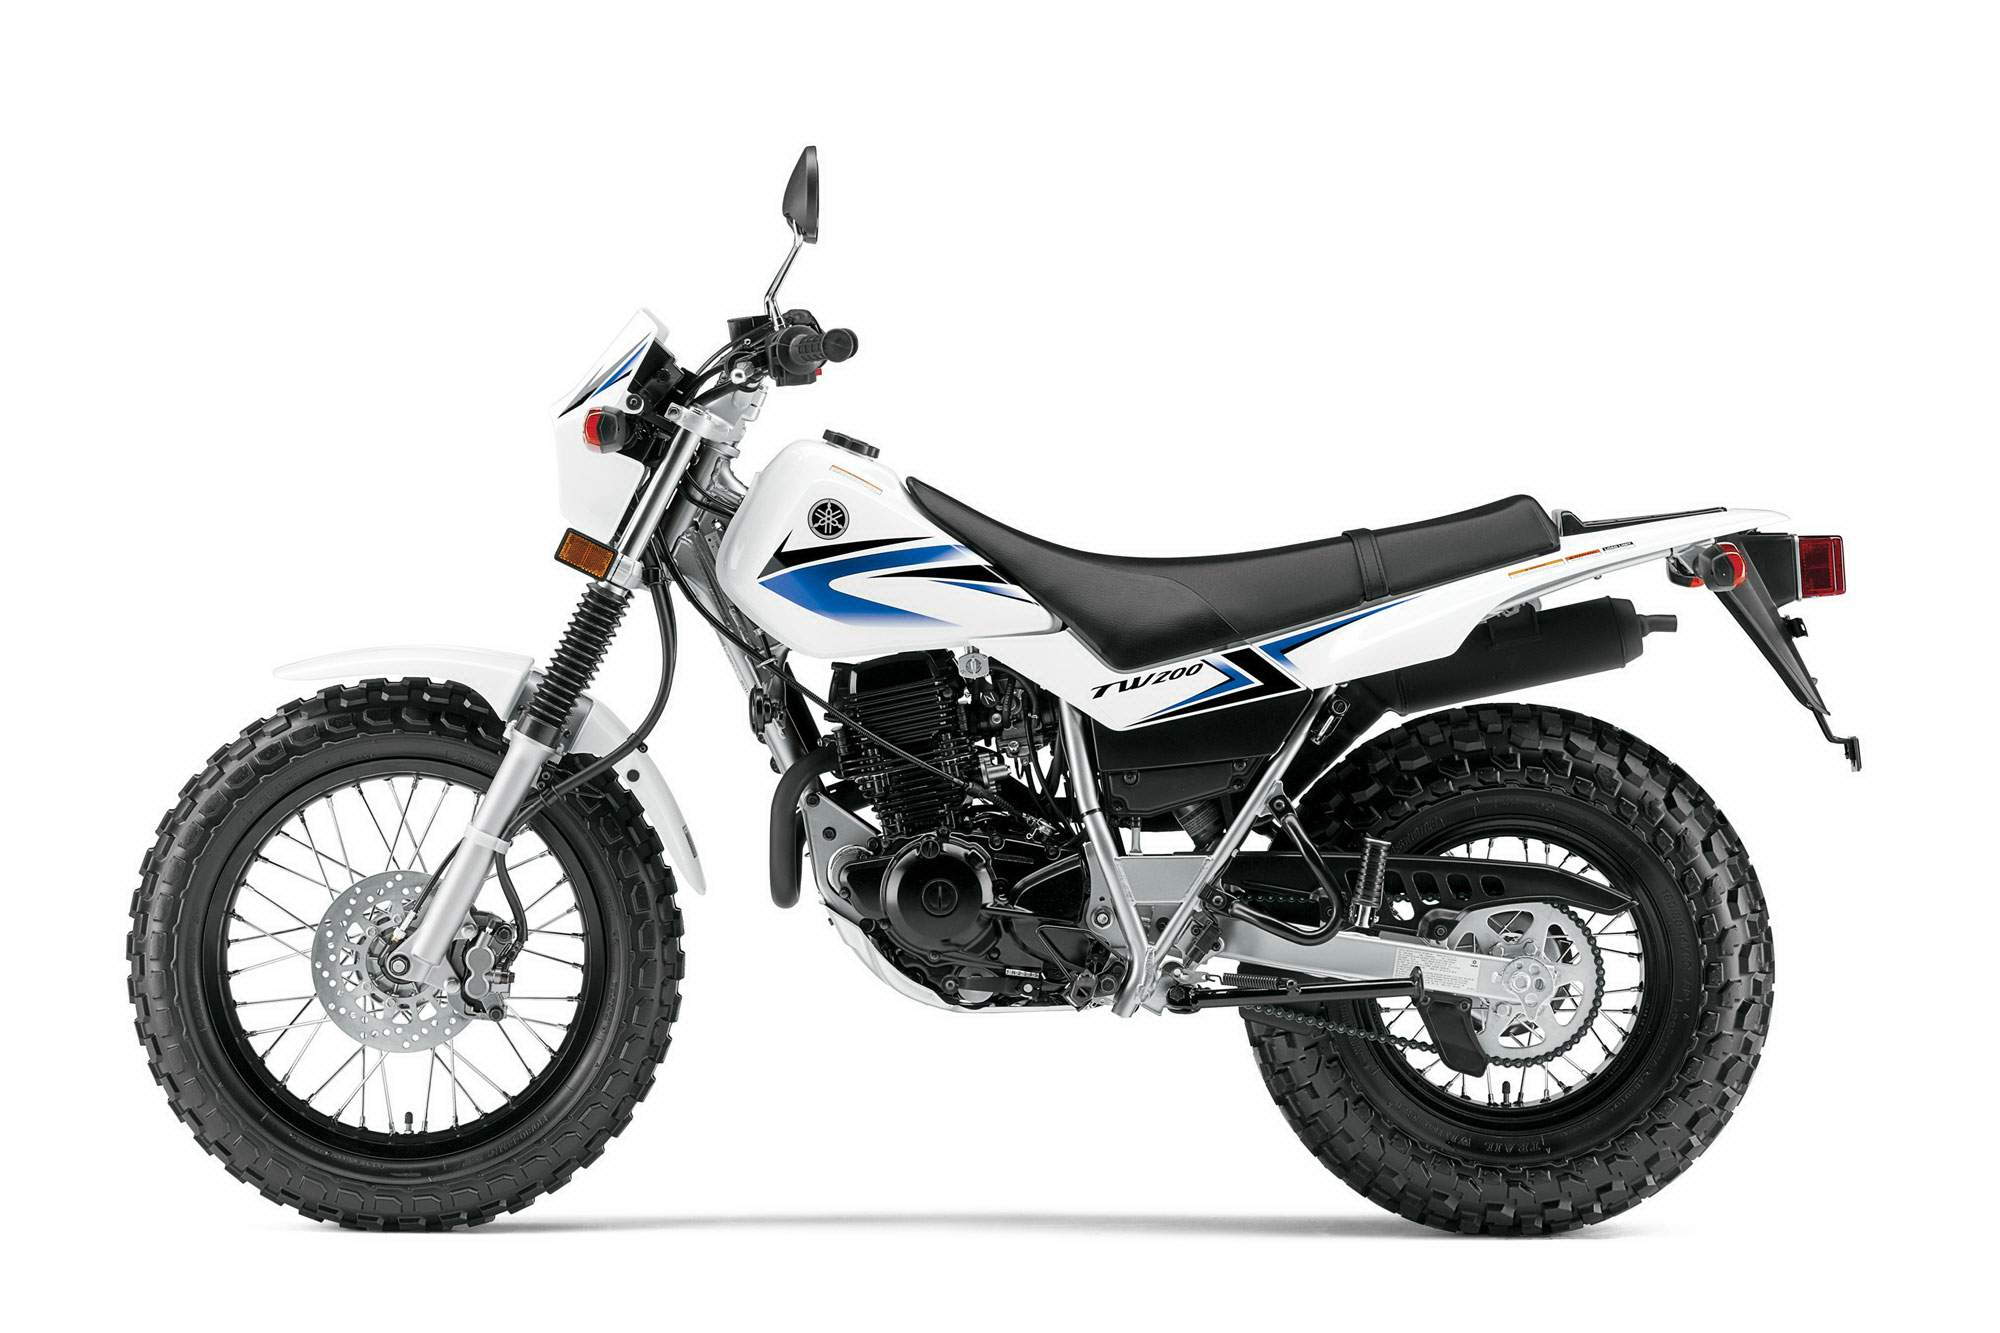 1995 Yamaha Tw 200 Pics Specs And Information